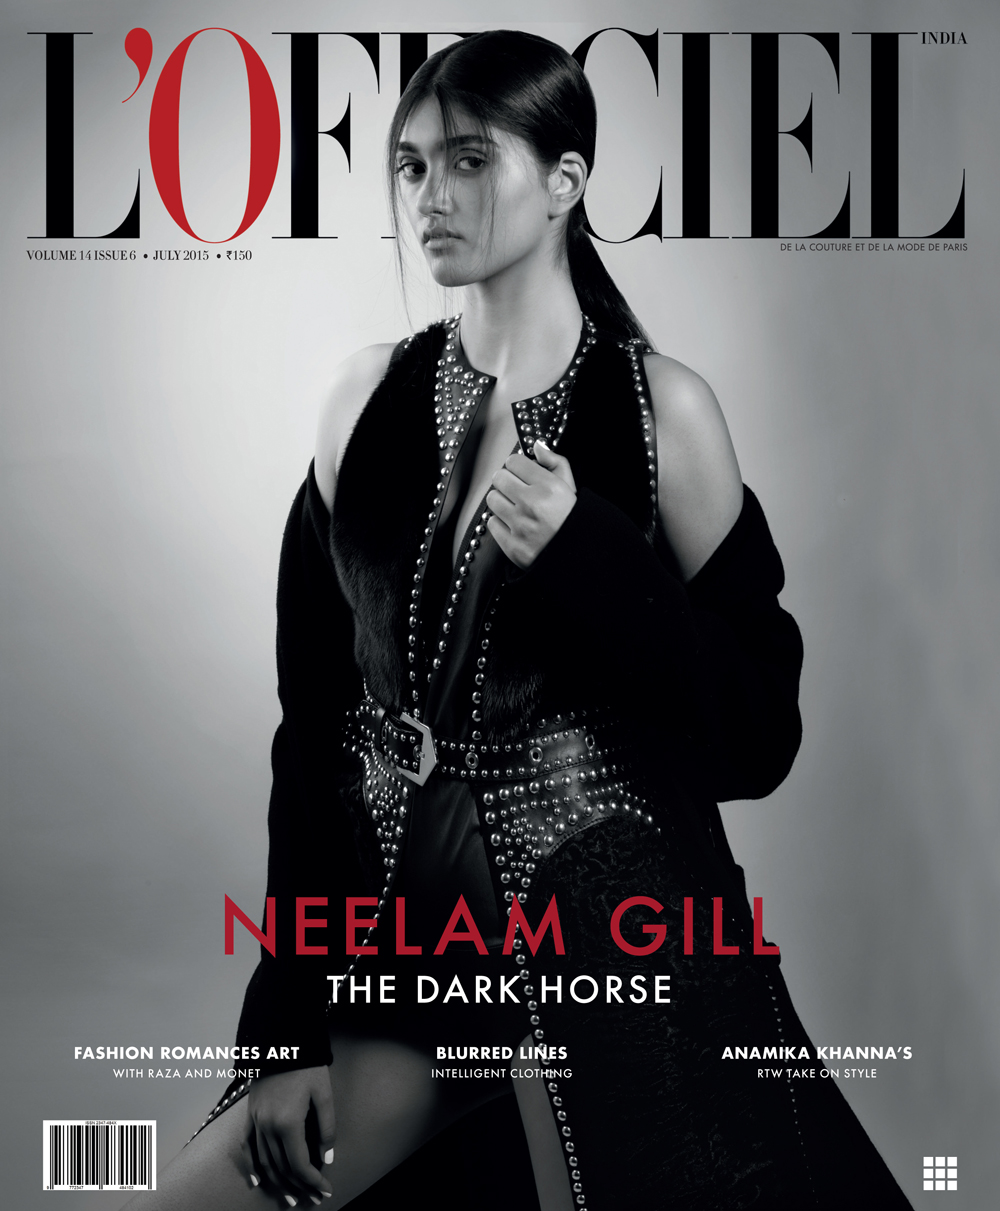 Neelam Gill by Onin Lorente for L'Officiel